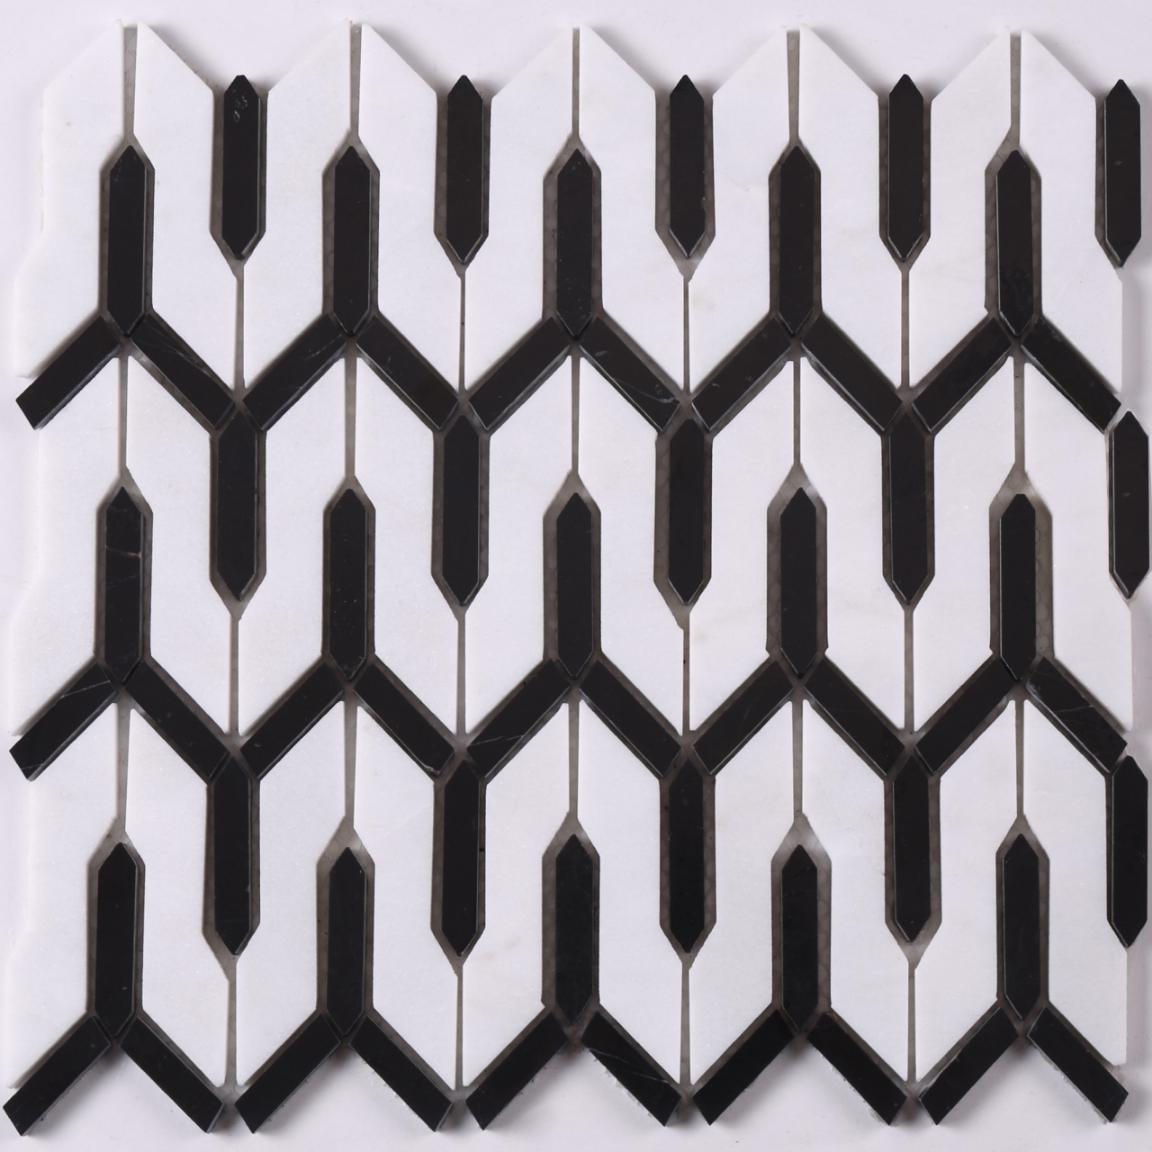 product-Heng Xing-HSC165 Carrar White Mixed Black Arrow Stone Mosaic Tile for Floor Bathroom-img